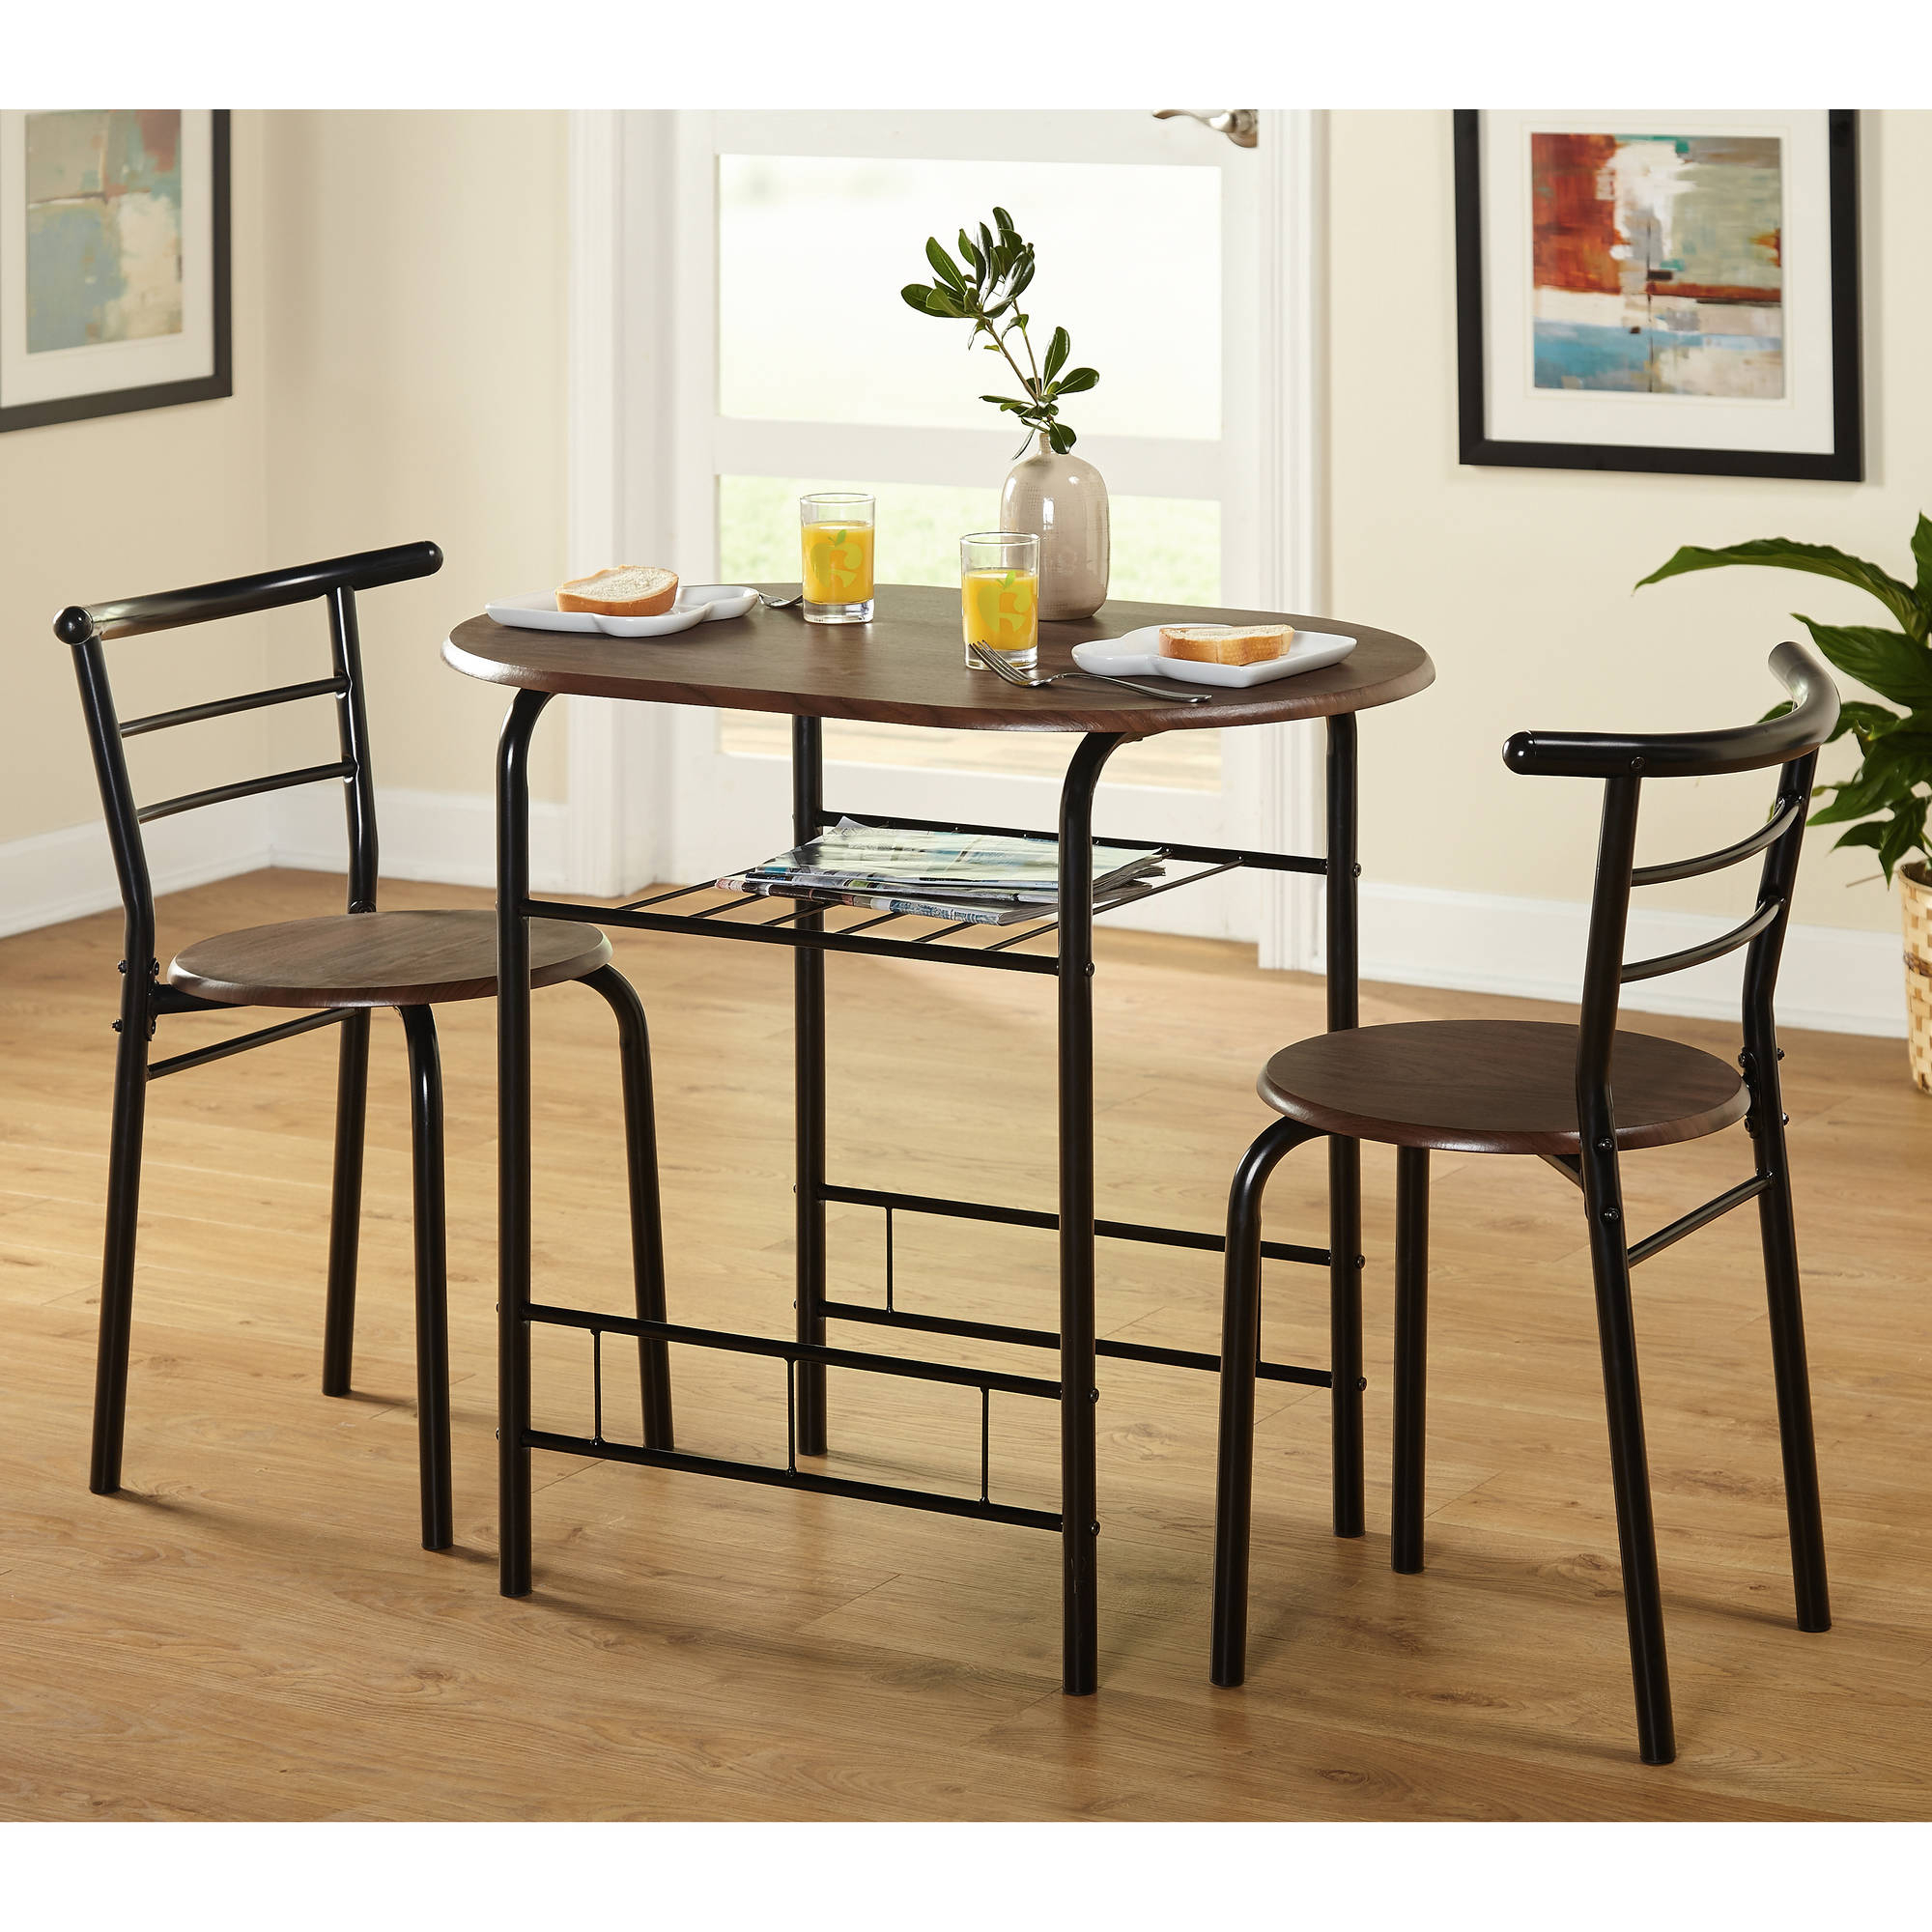 Recent Tms 3 Piece Bistro Dining Set Pertaining To 3 Piece Dining Sets (Gallery 8 of 20)